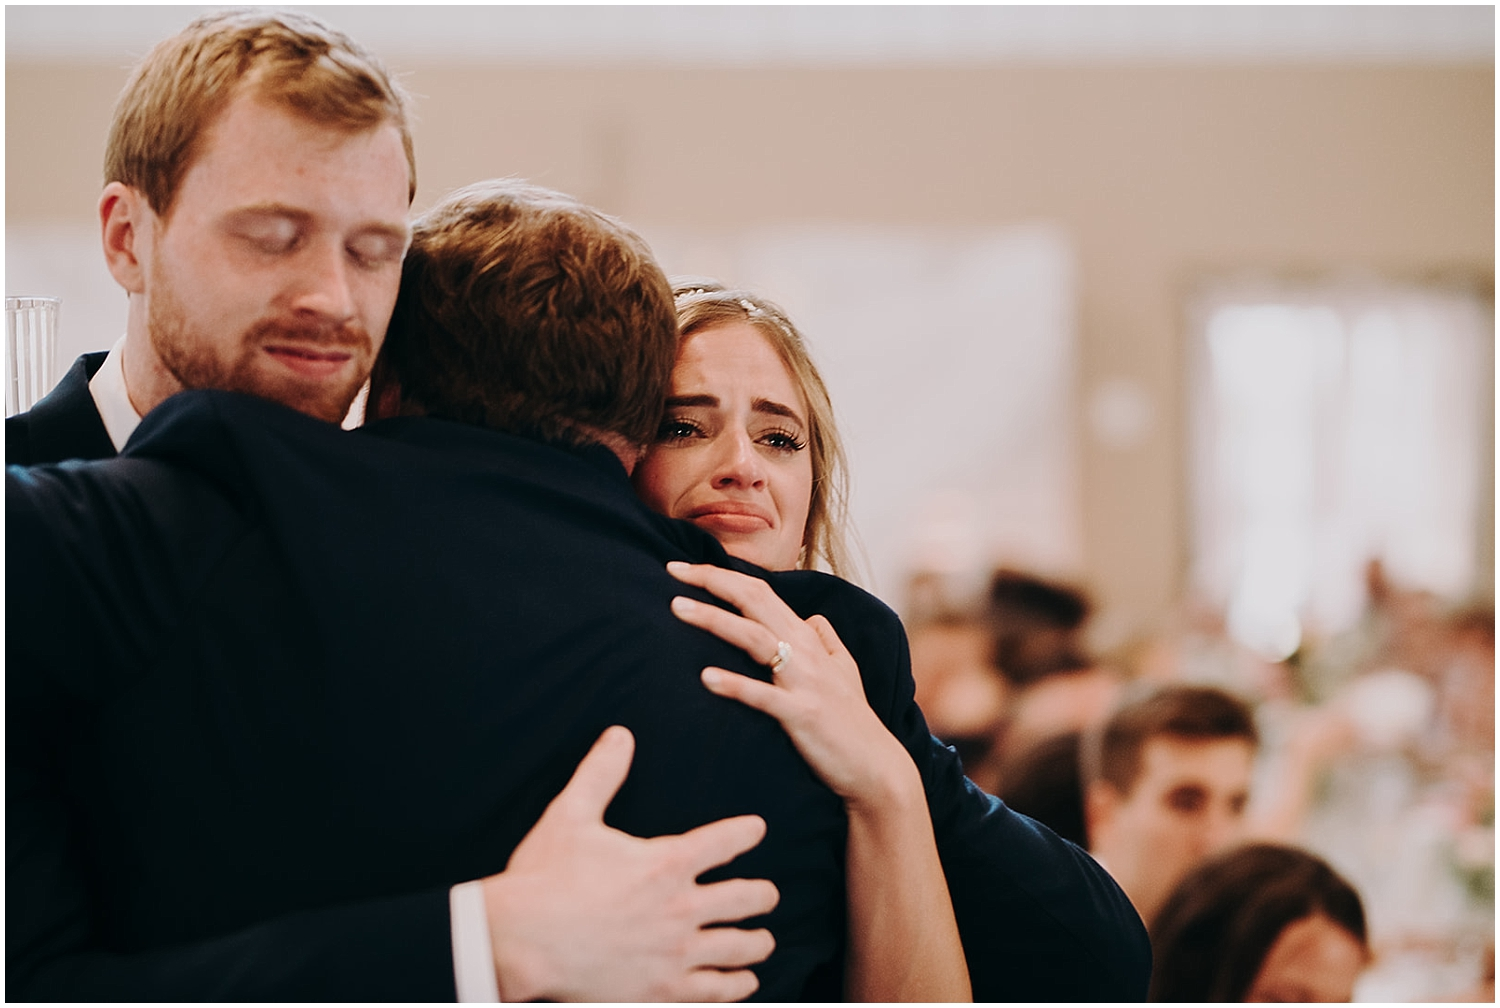 the bride and groom having an emotional hug